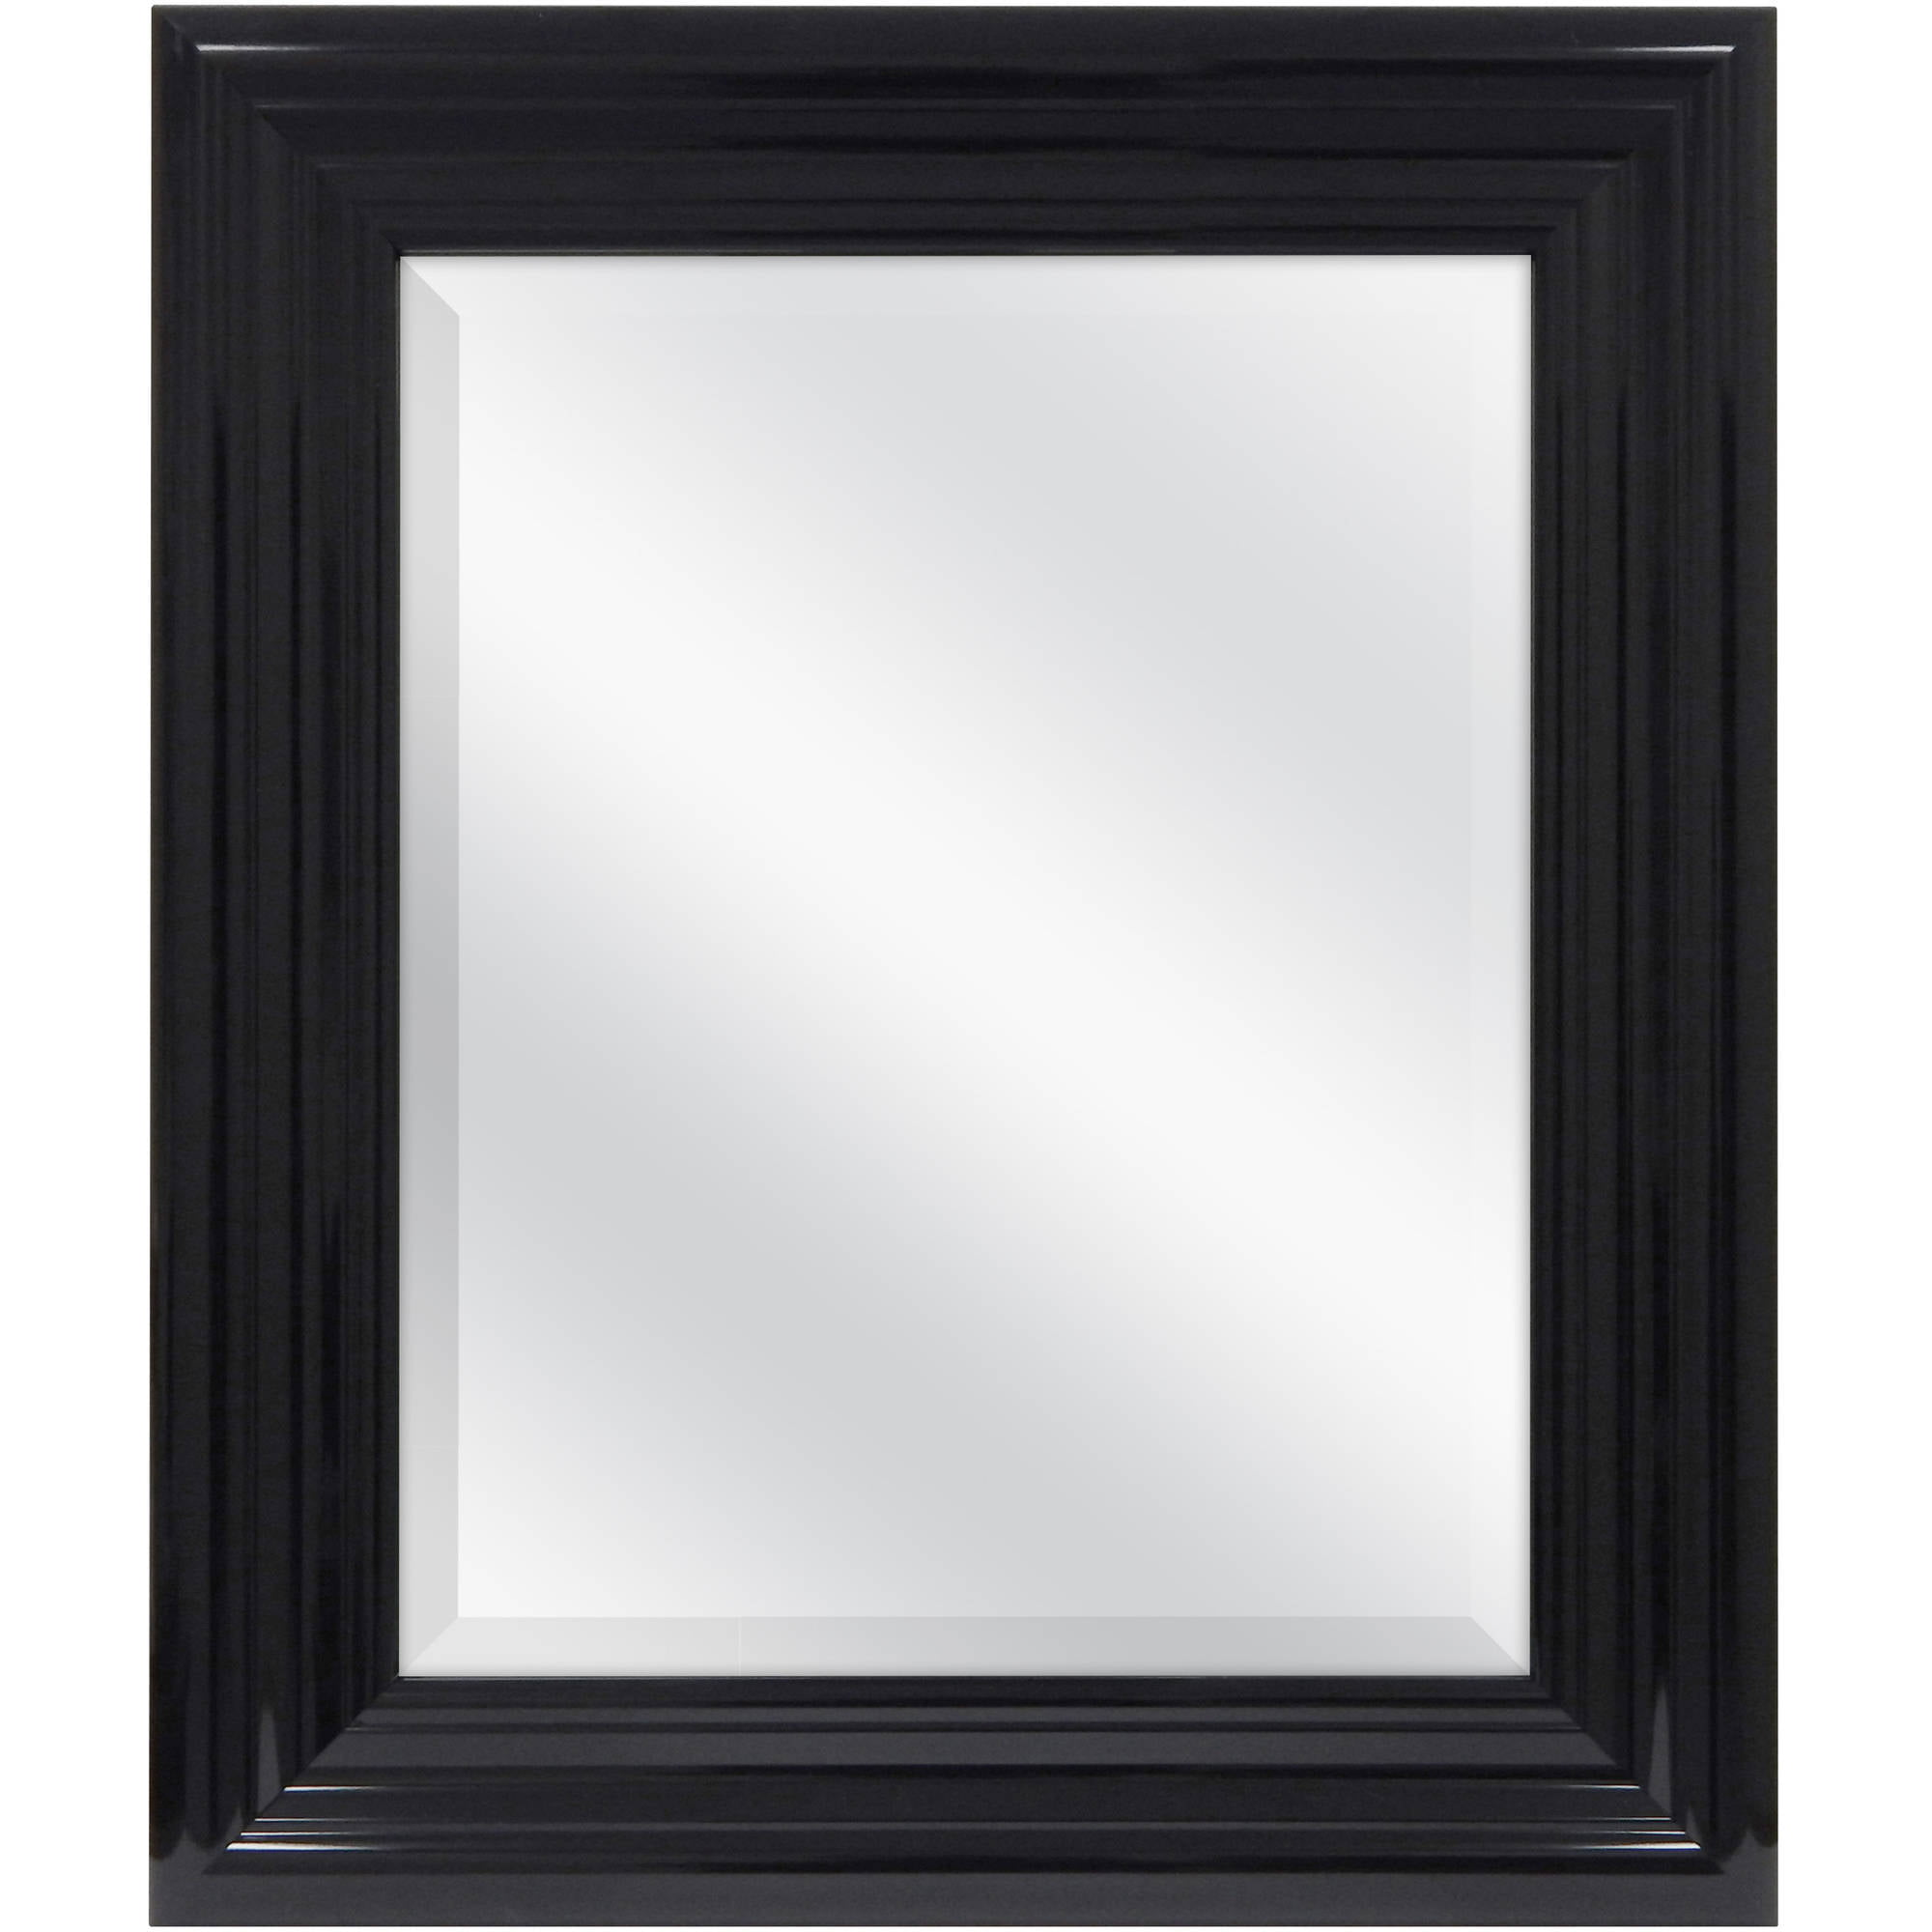 Bathroom mirrors framed 40 inch - Wall Mirrors